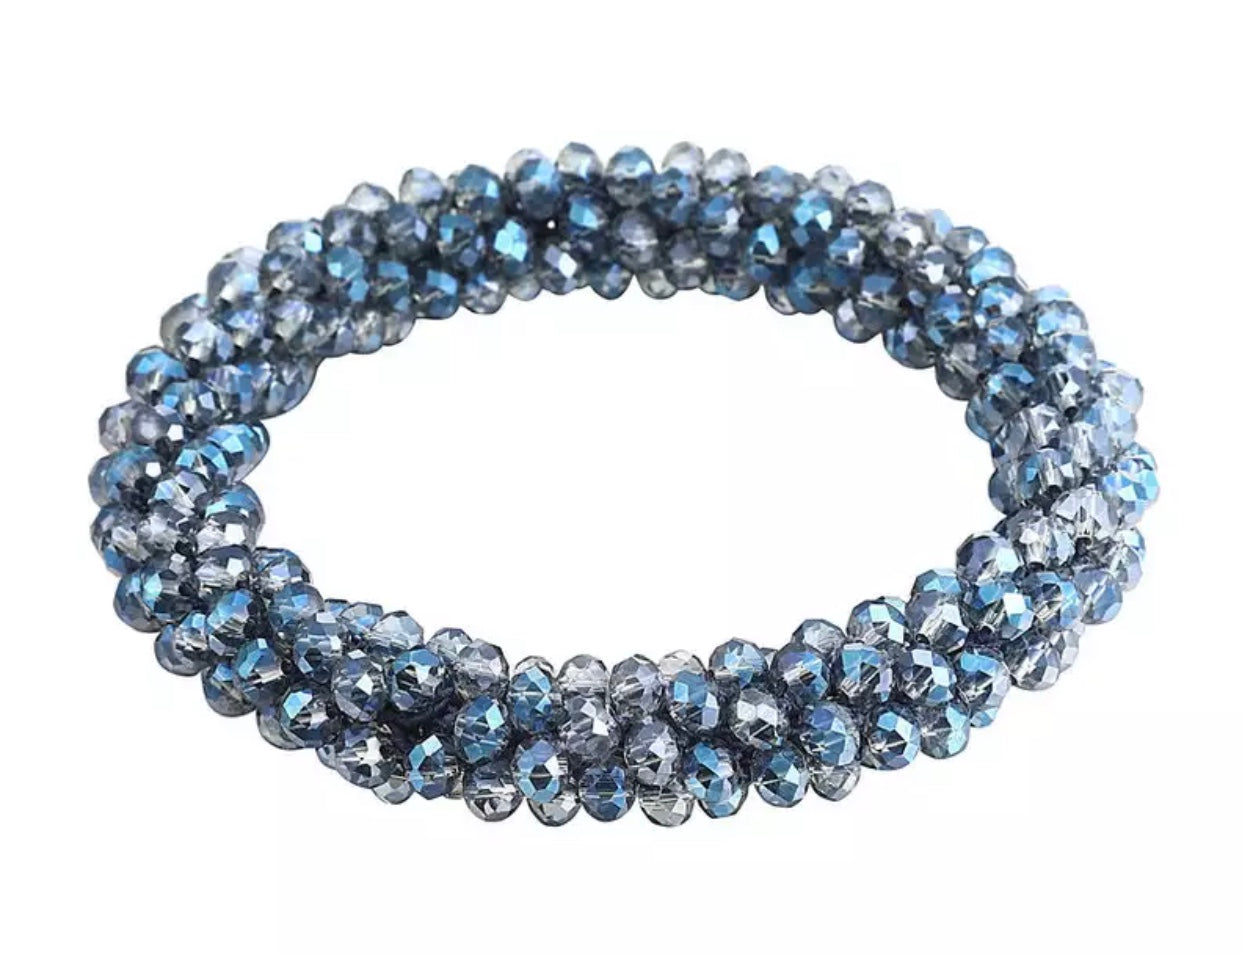 Beaded Acrylic Stretch Bracelet - Six Available Colors - Mseljoy Accessories